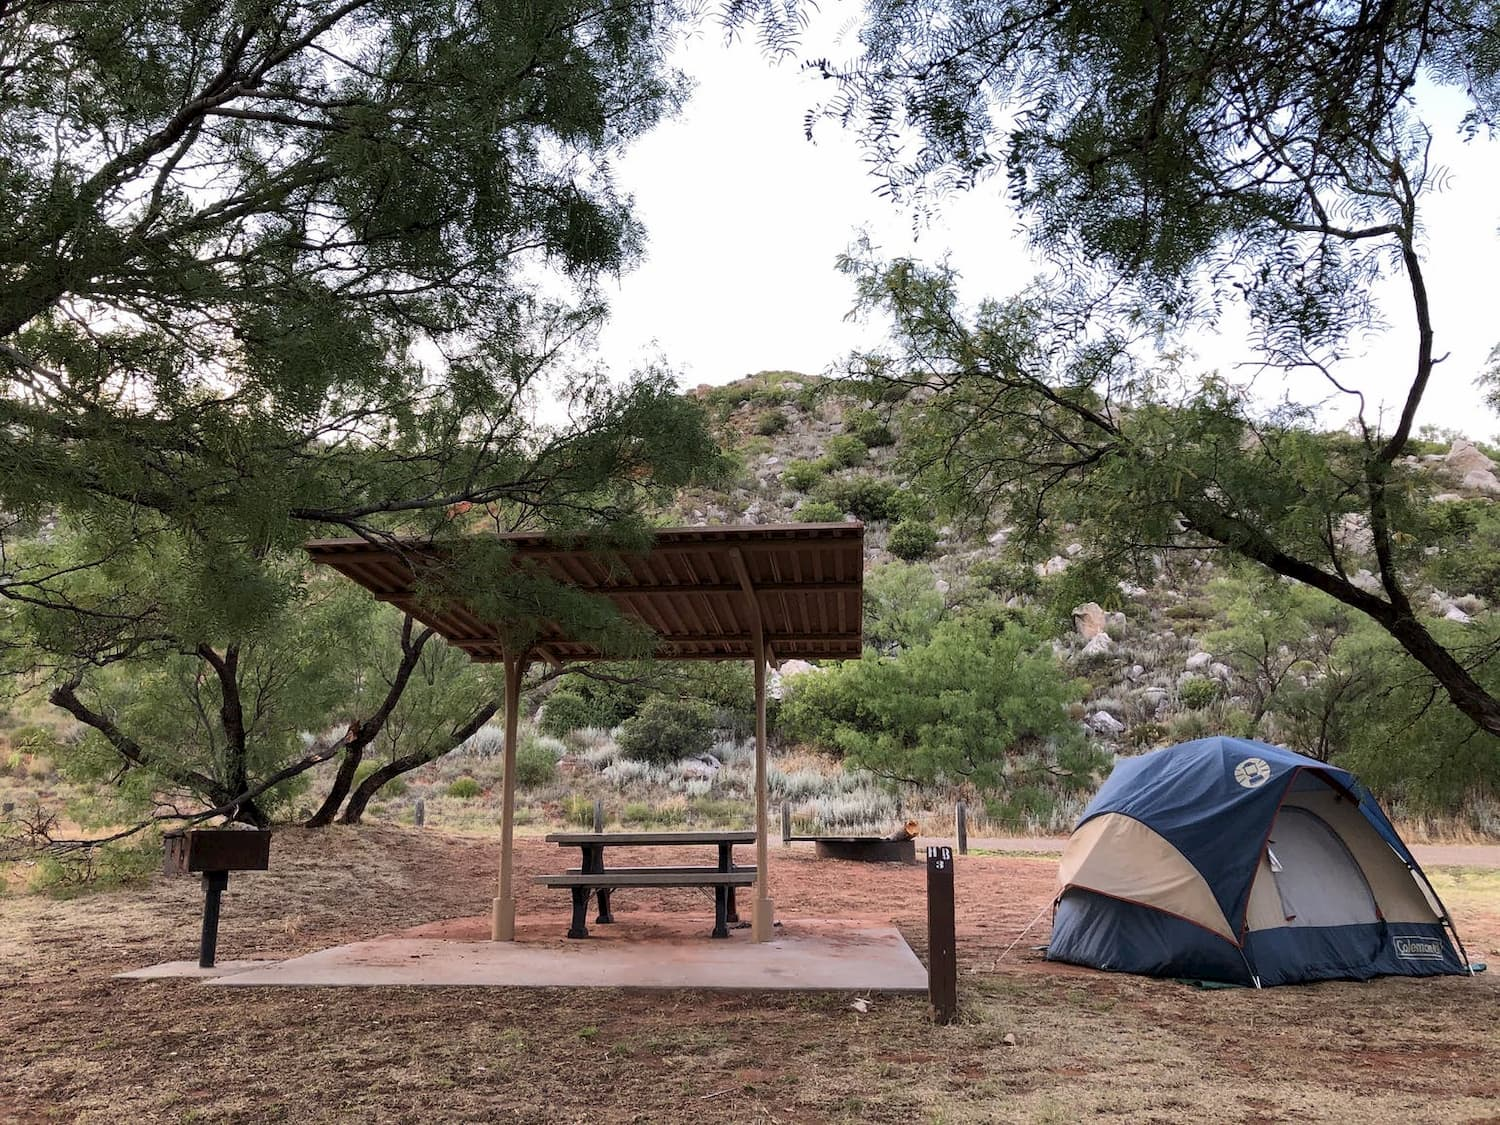 tent and picnic table at campsite